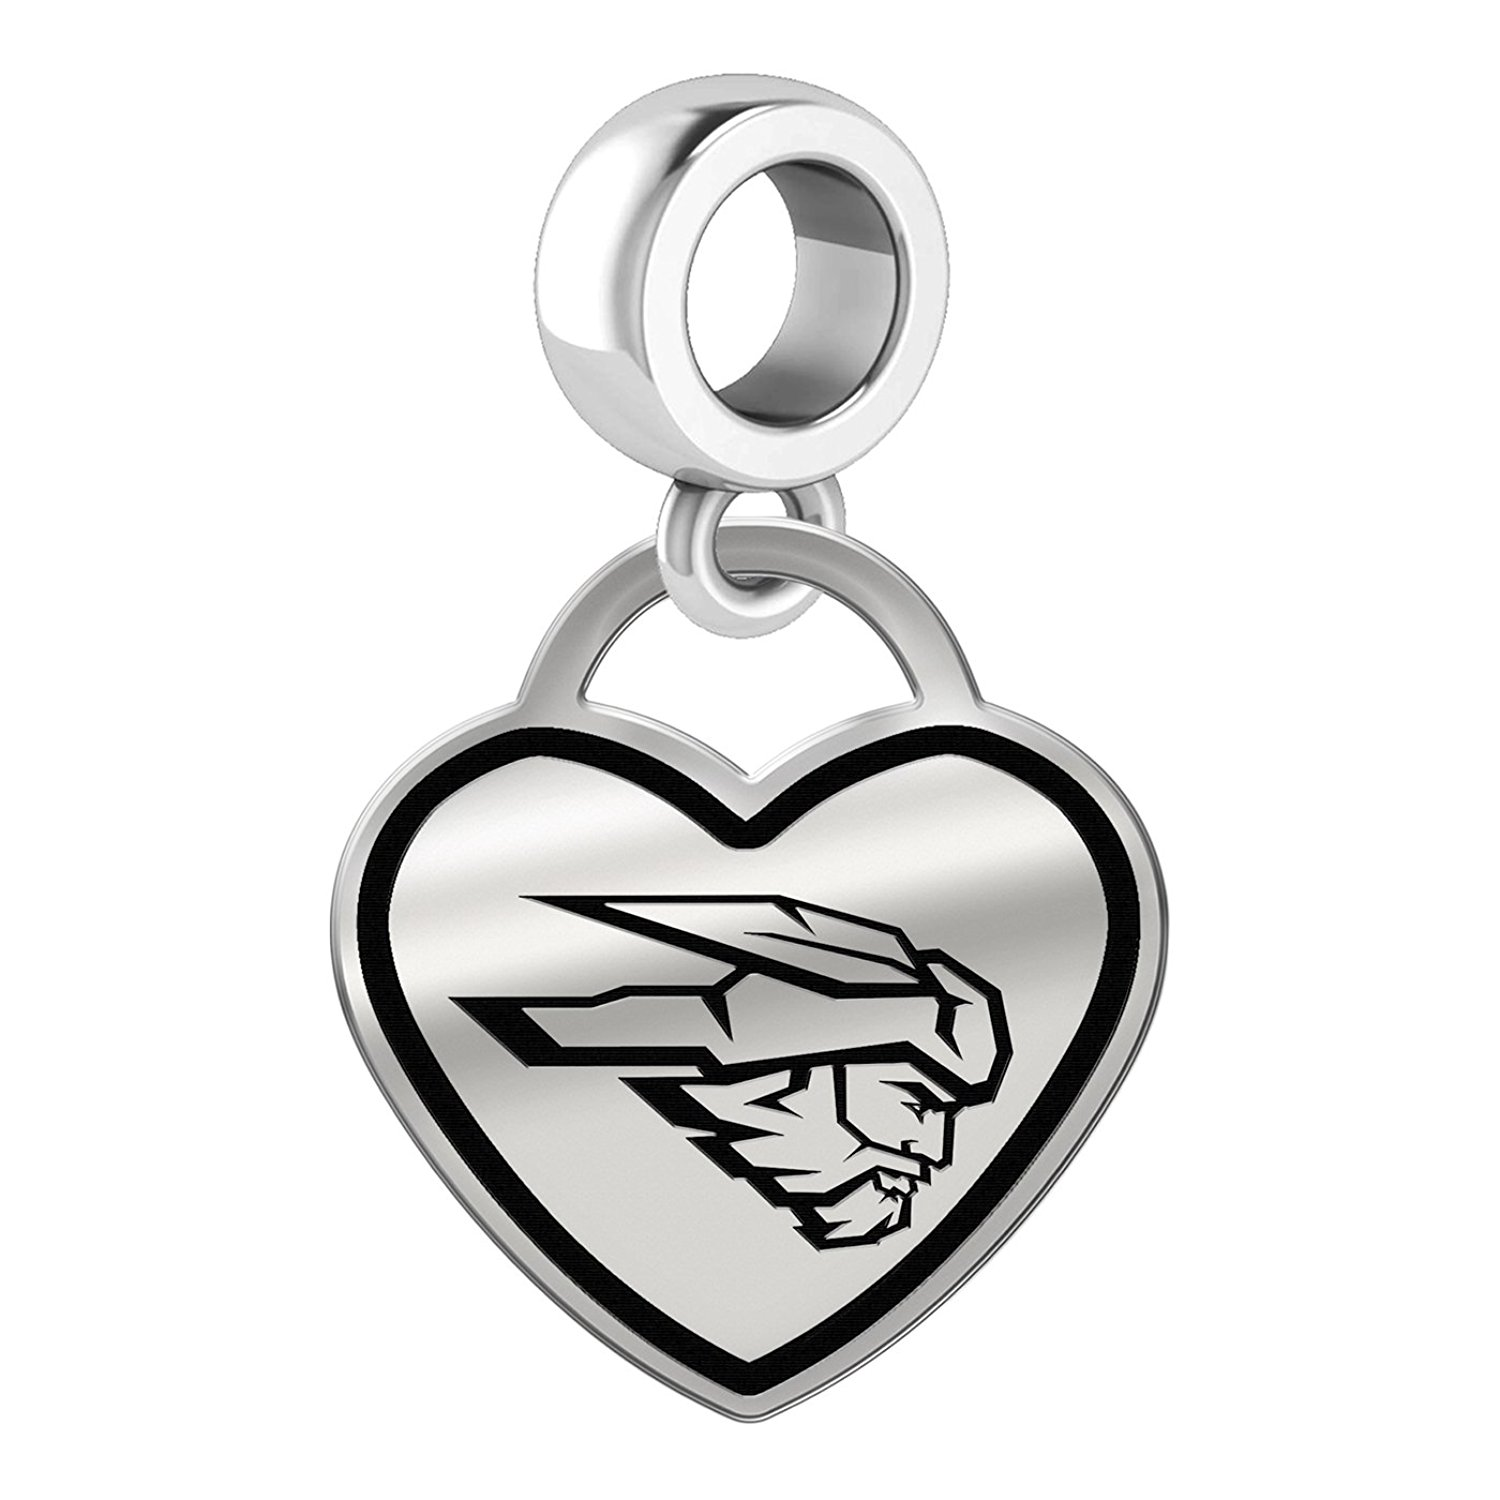 1b0653f81f29db Get Quotations · Western State Colorado Mountaineers Border Heart Dangle  Charm Fits All Beaded Charm Bracelets